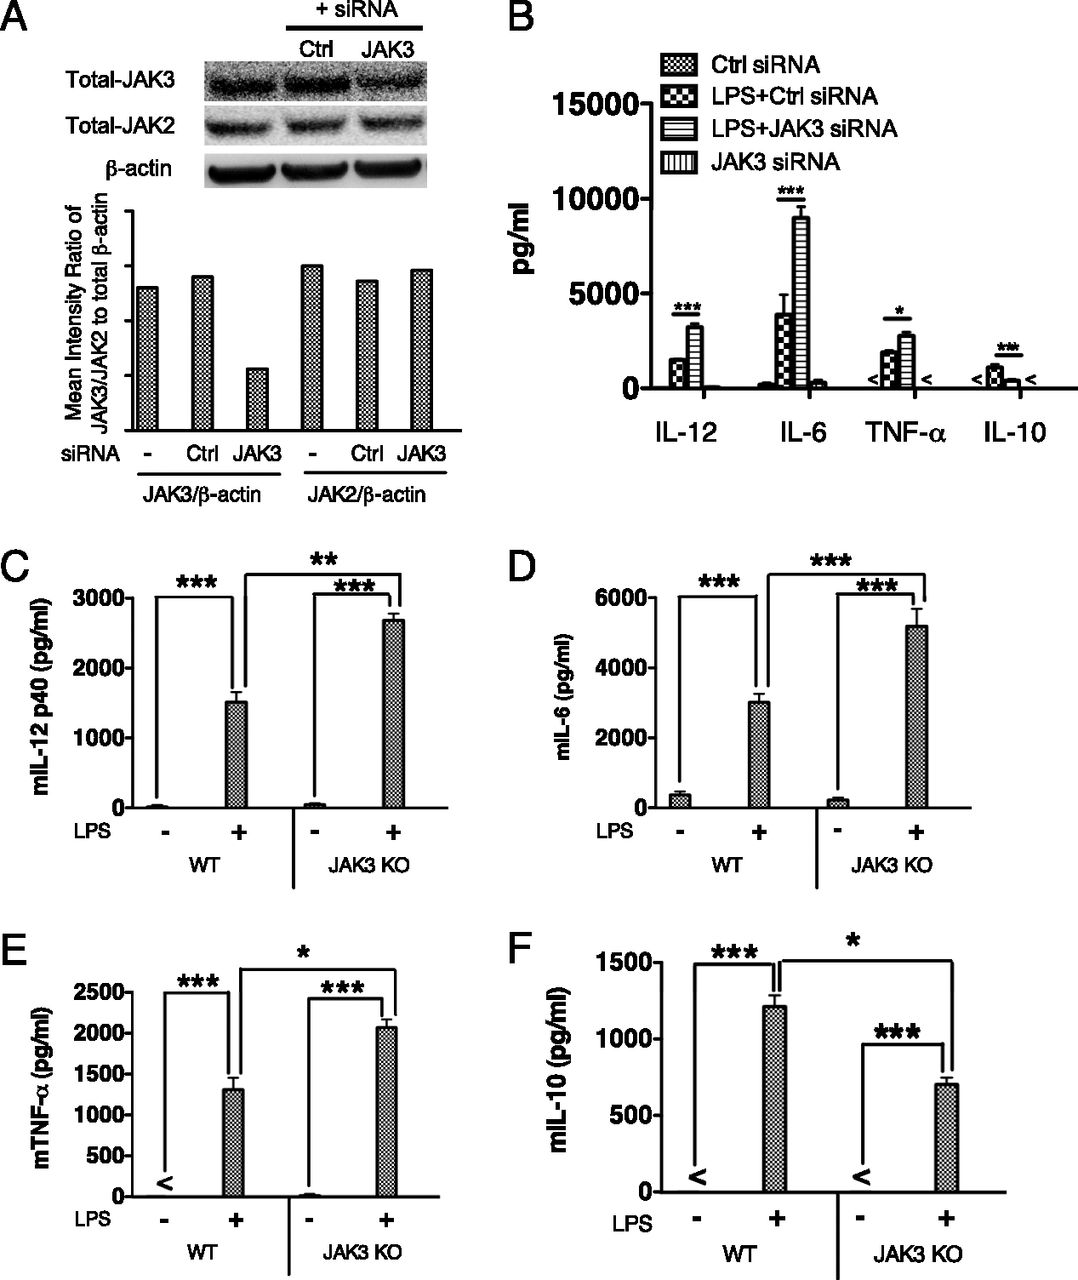 The Role of JAK-3 in Regulating TLR-Mediated Inflammatory Cytokine